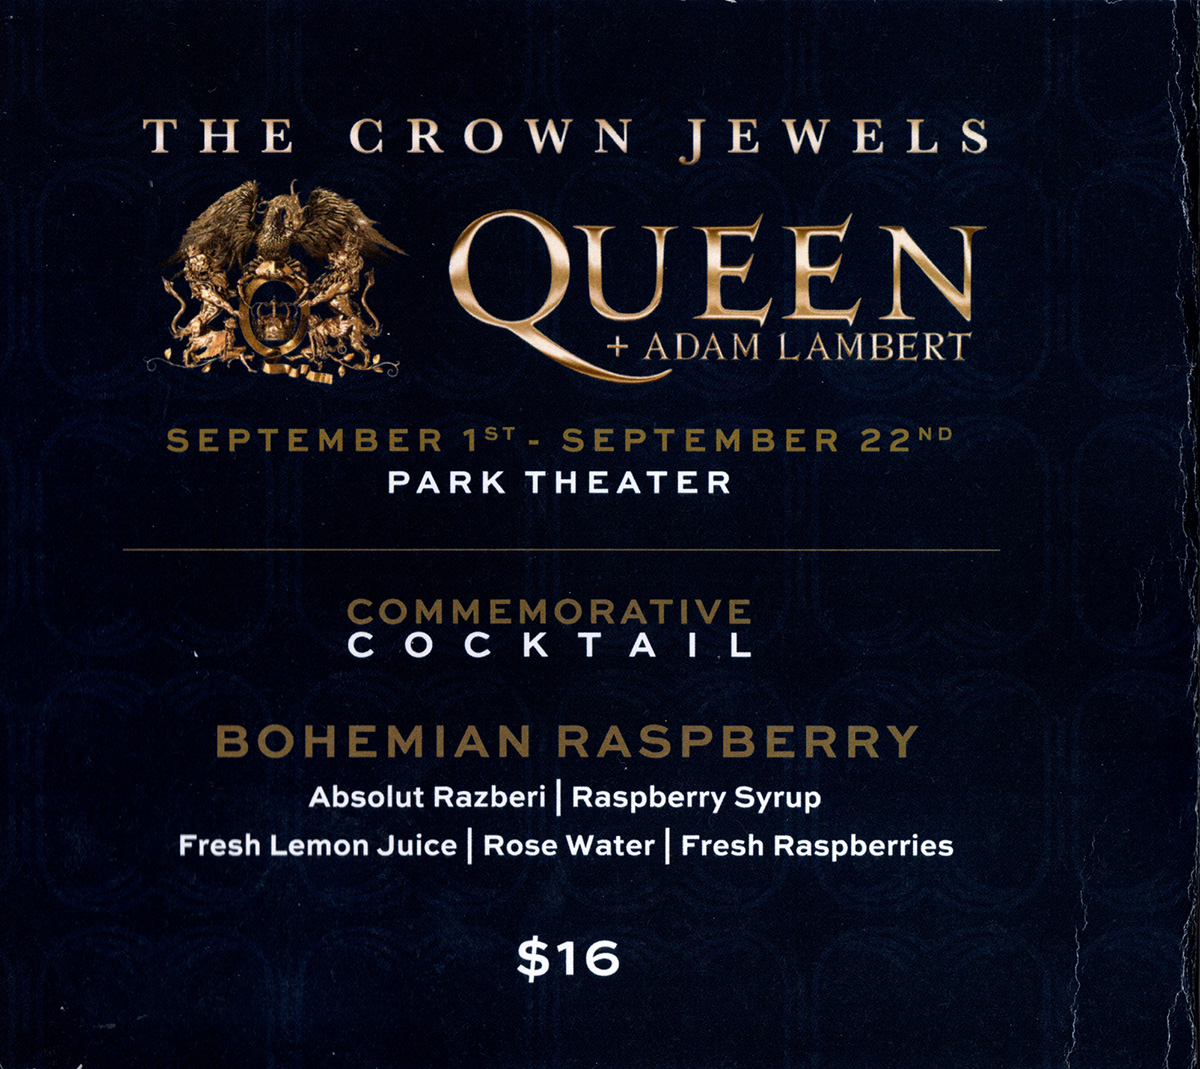 Queen + Adam Lambert in Las Vegas in September 2018